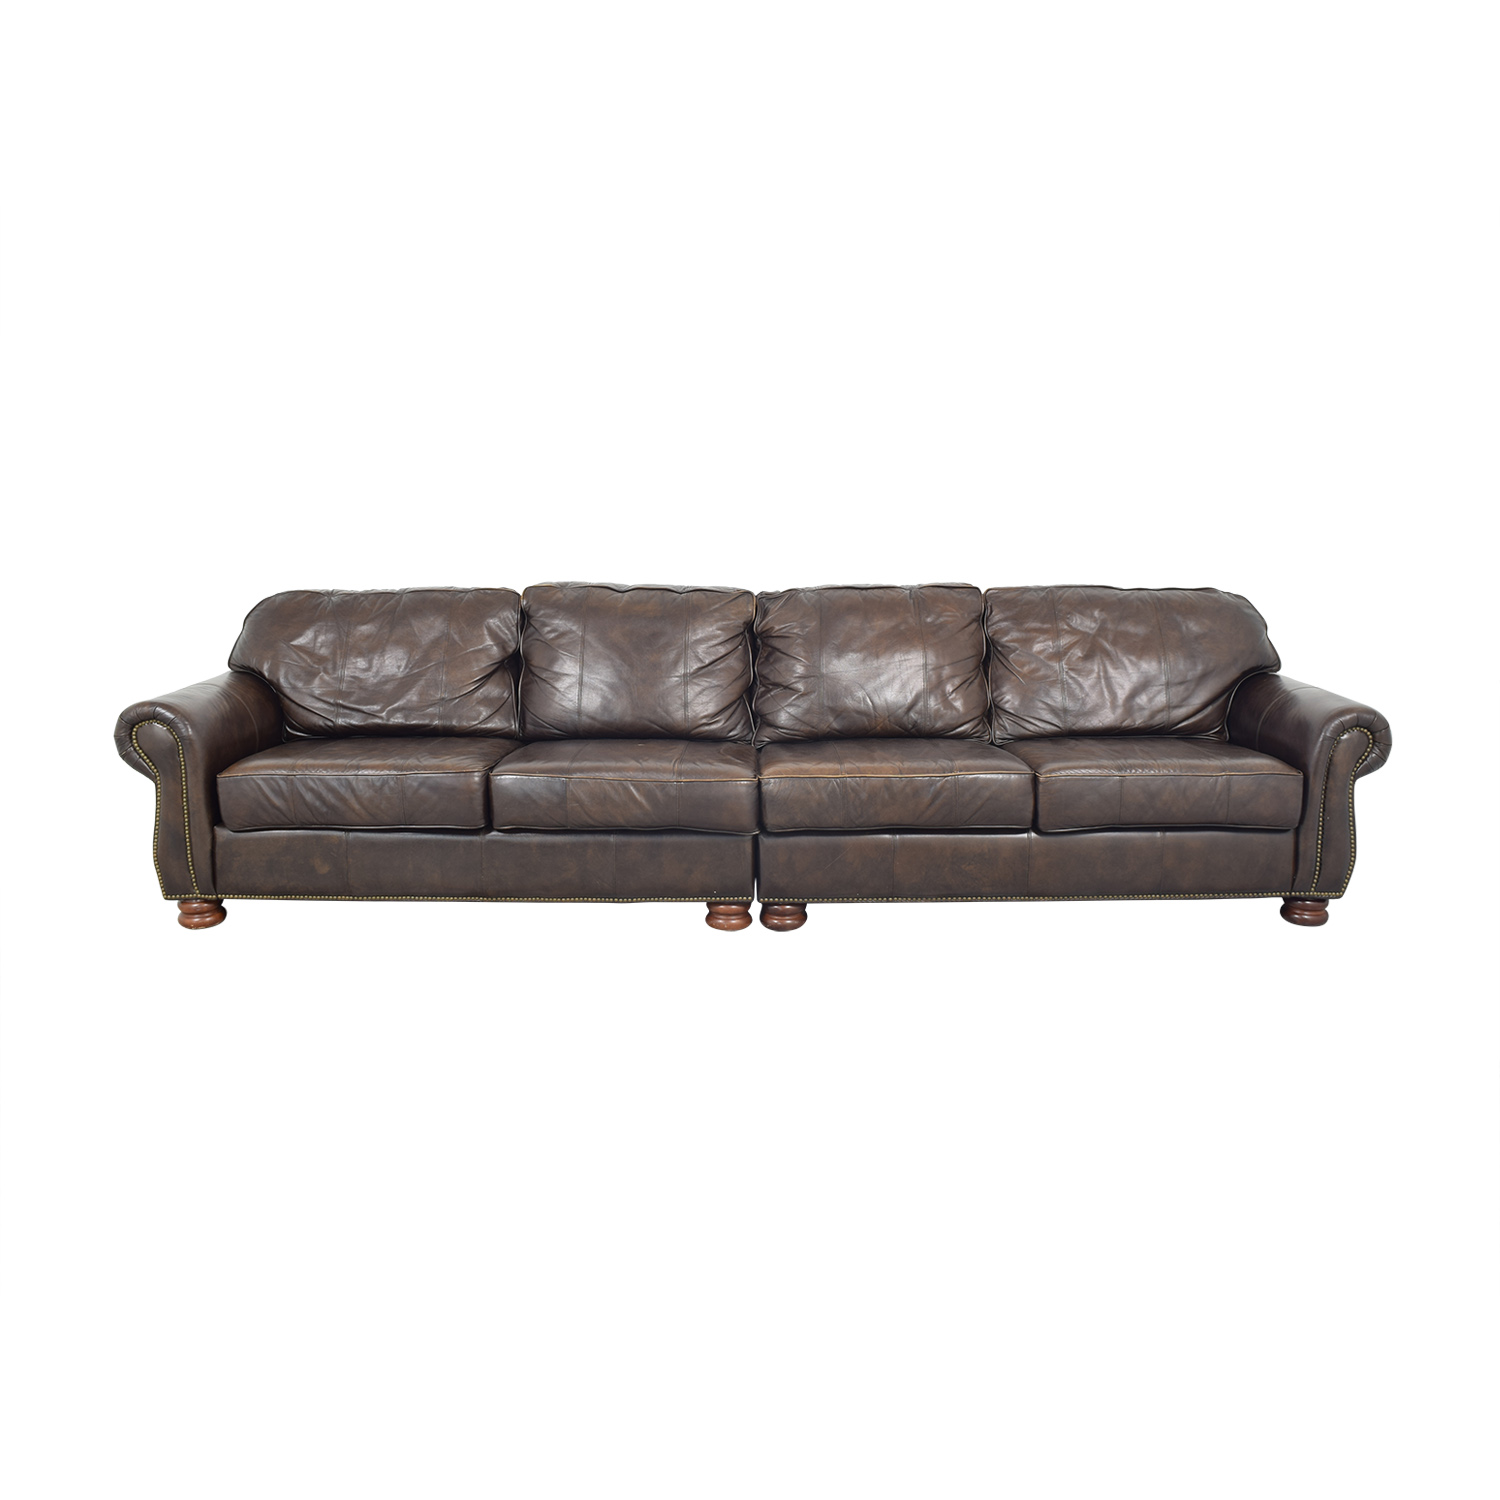 Thomasville Thomasville Two Section Four Seat Sofa price